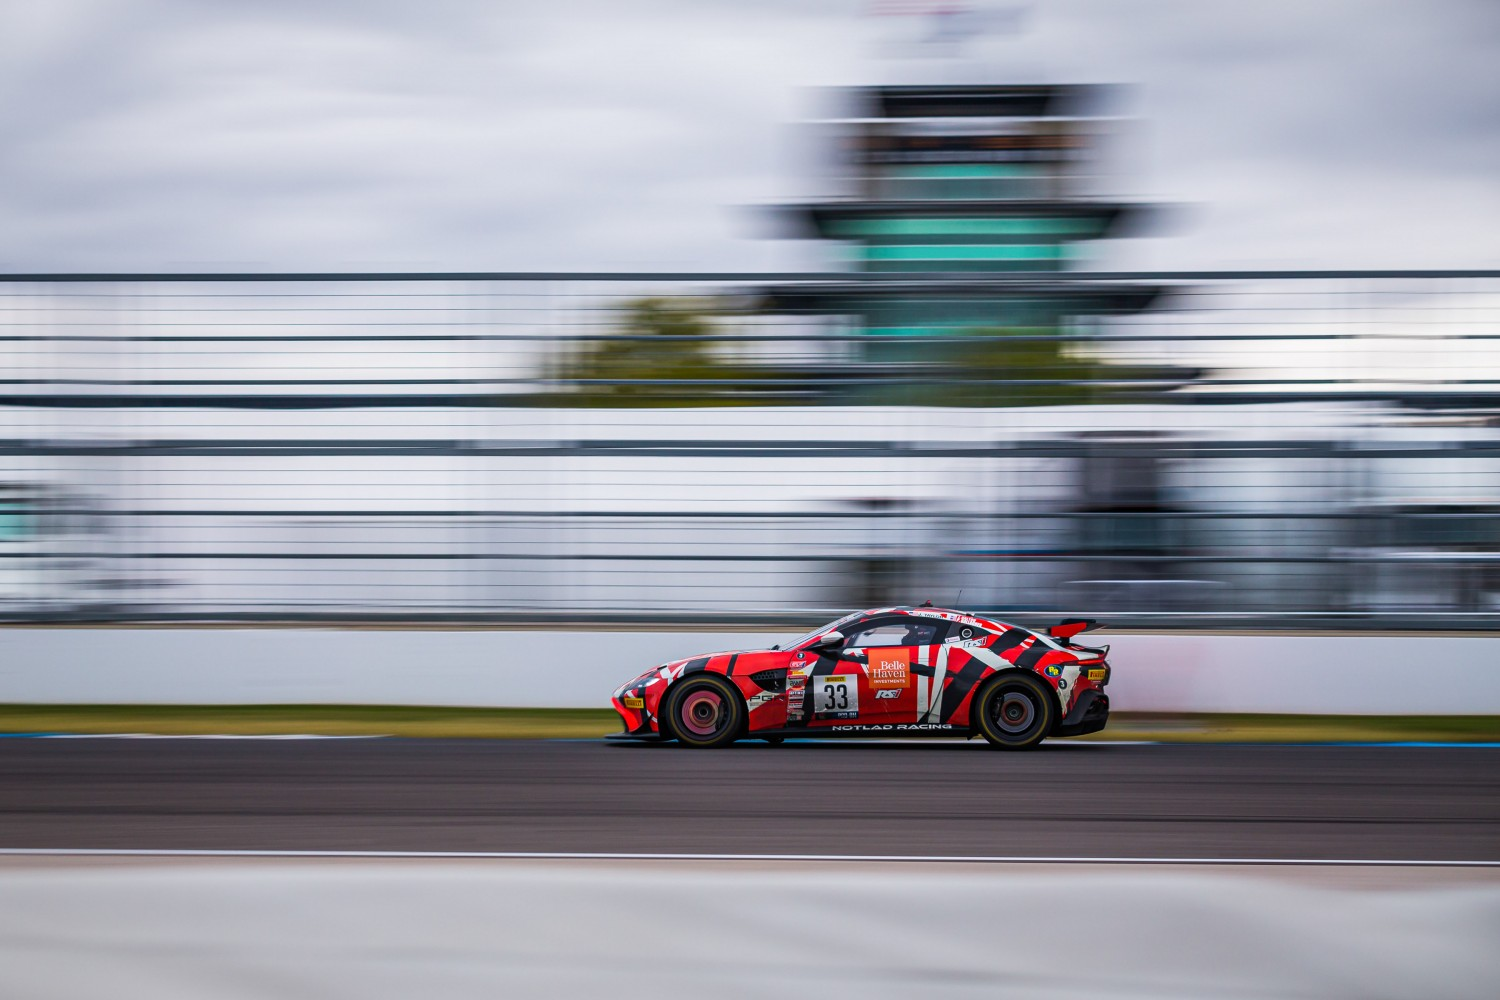 #33 Aston Martin Vantage GT4 of Joe Dalton, Patrick Gallagher, and Jonathan Taylor, Notlad Racing by RS1, GT4, IN, Indianapolis, Indianapolis Motor Speedway, SRO, September 2020.  | Fabian Lagunas/SRO